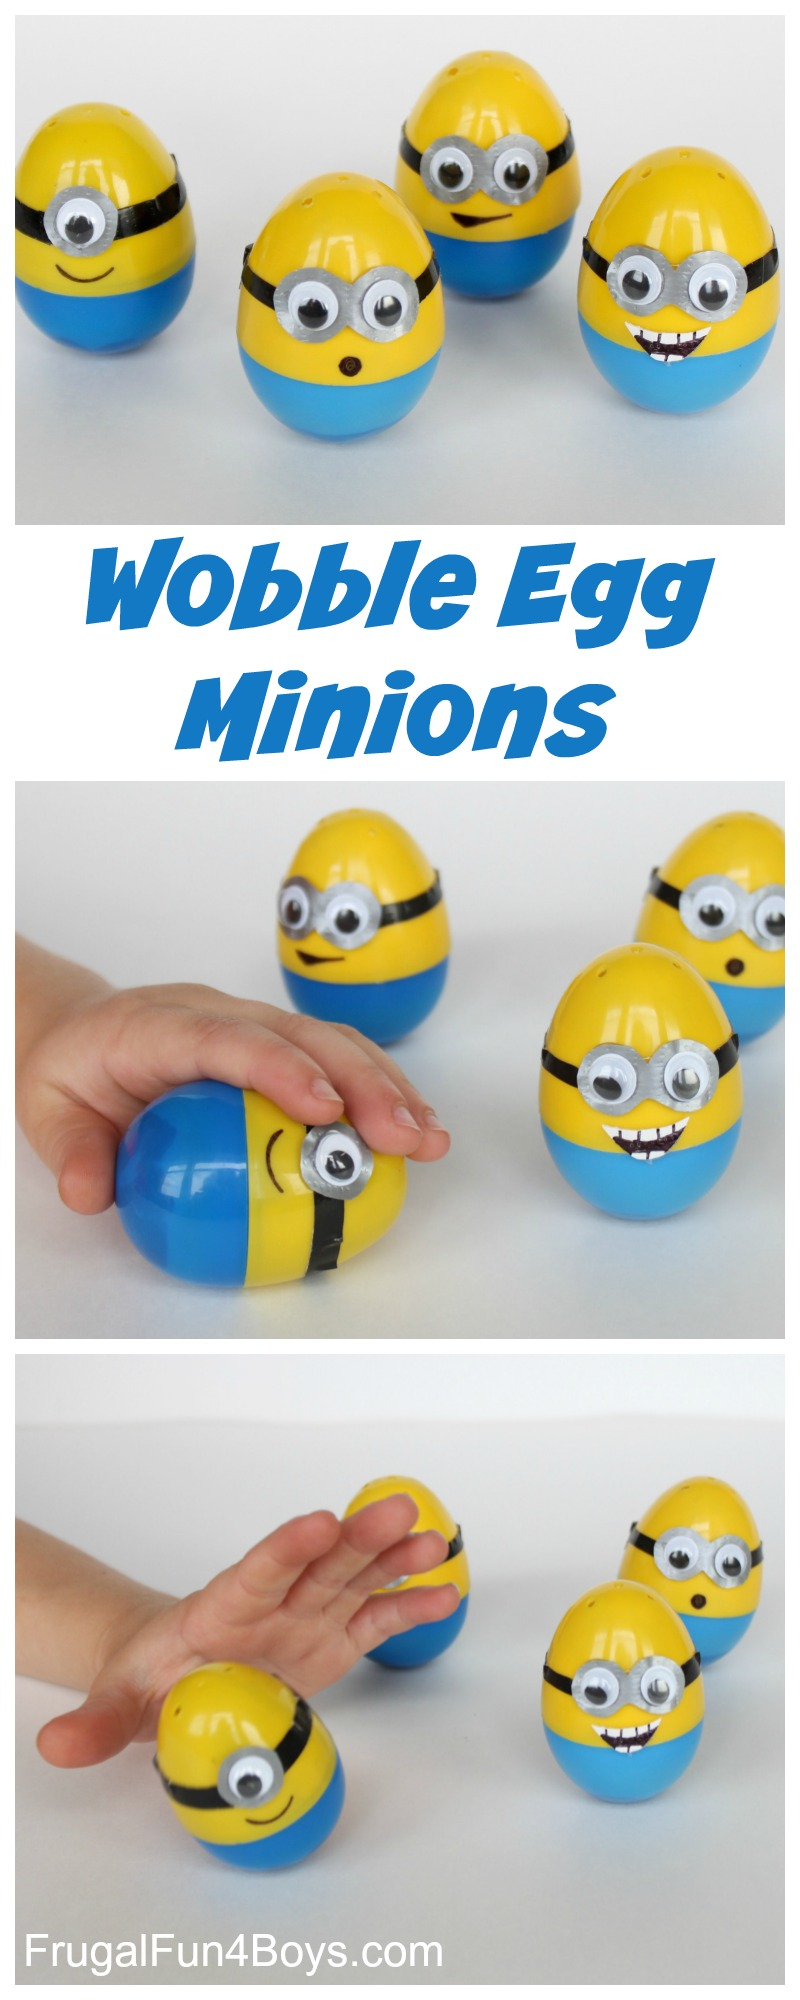 Make Minion Eggs - Push them down and they pop back up!